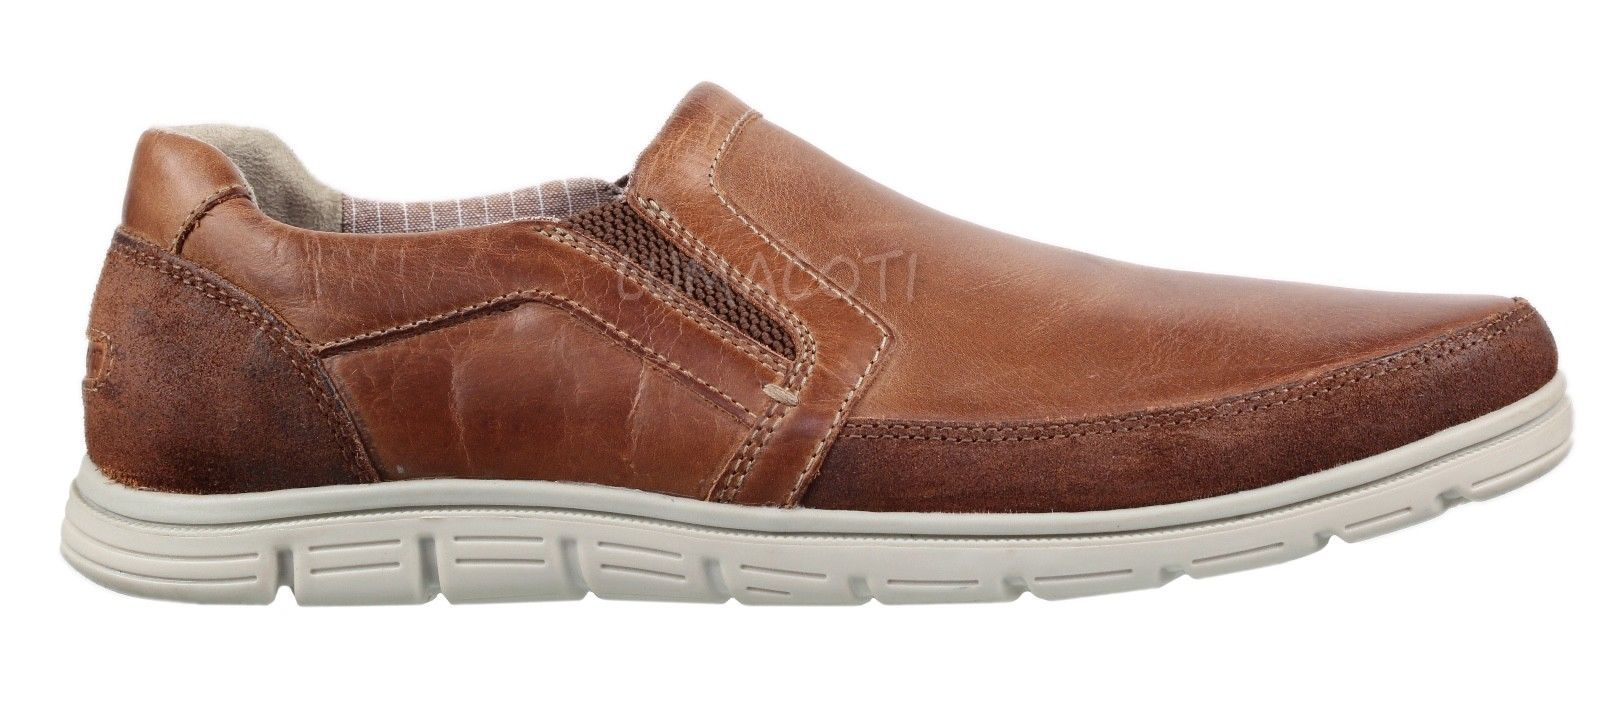 Mens Rockport Bowman Double Gore Slip-On Shoes [CG9842]